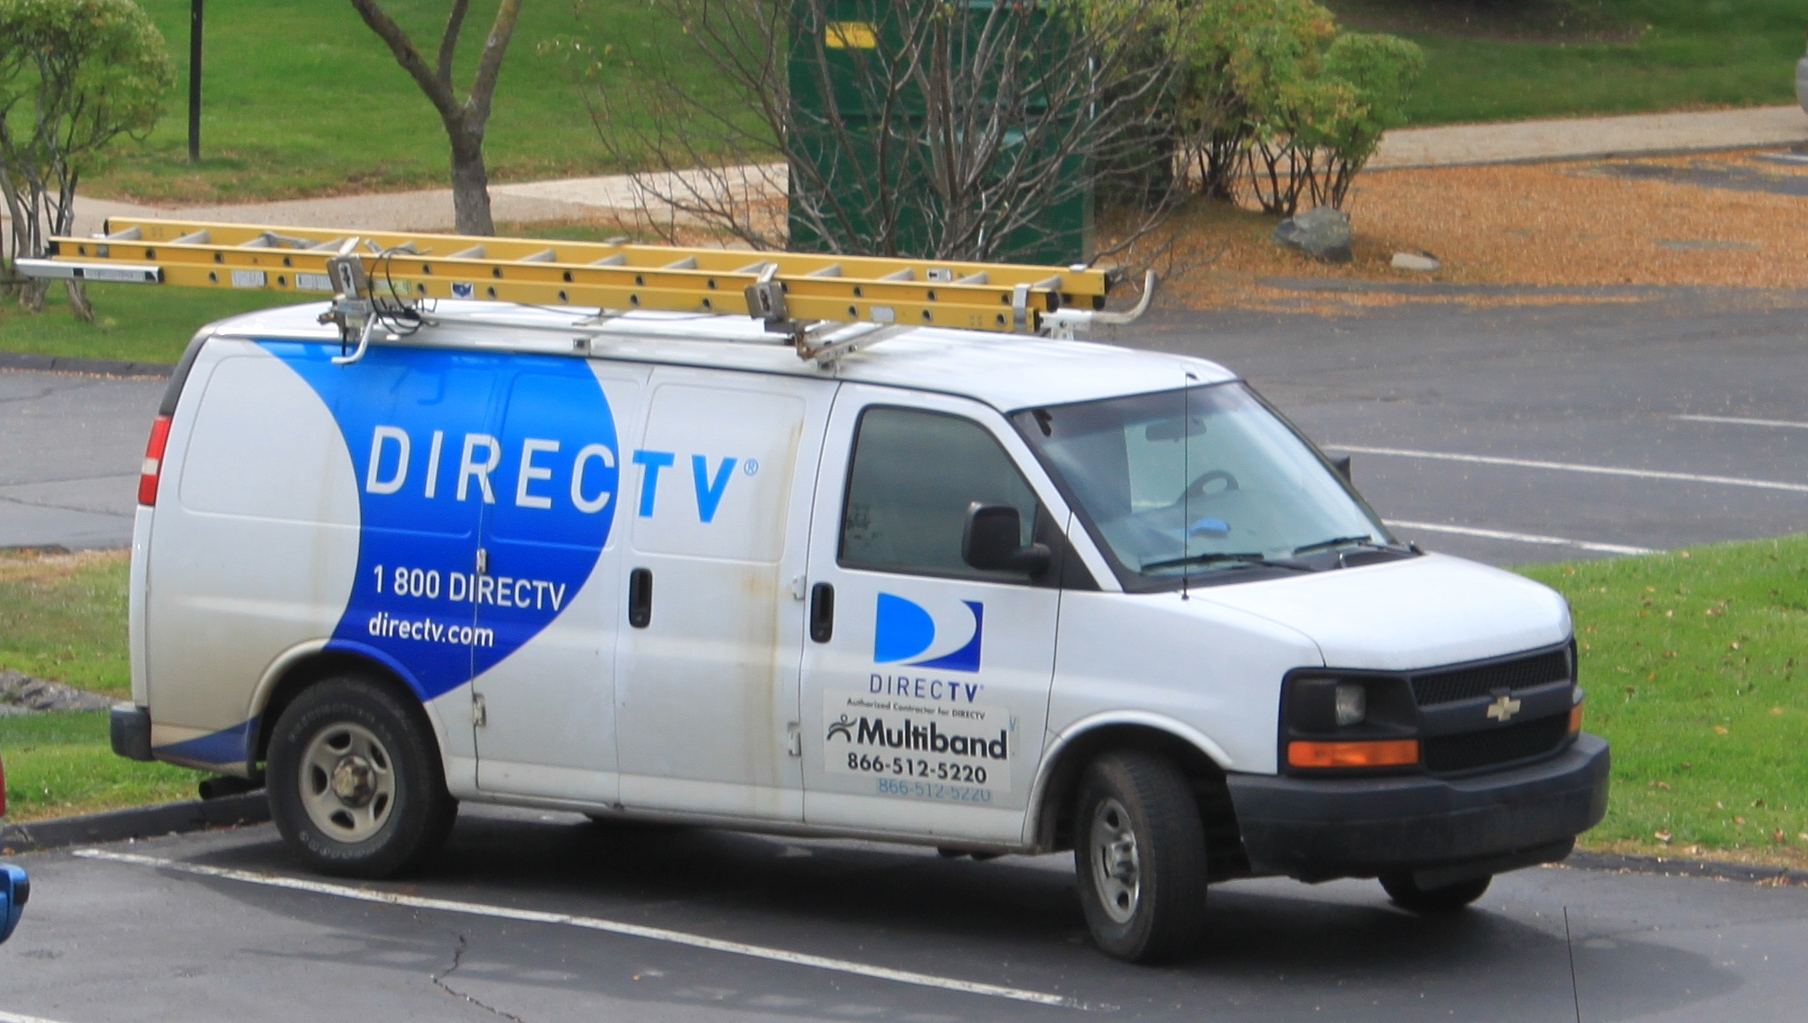 DirecTV service van, Ypsilanti Township, Michigan. DirecTV equipment is installed and maintained by private contractors such as Multiband as shown here. In most areas throughout the United States installation, upgrades, and service are performed by DirecTV home services, a division of DirecTV corporate.